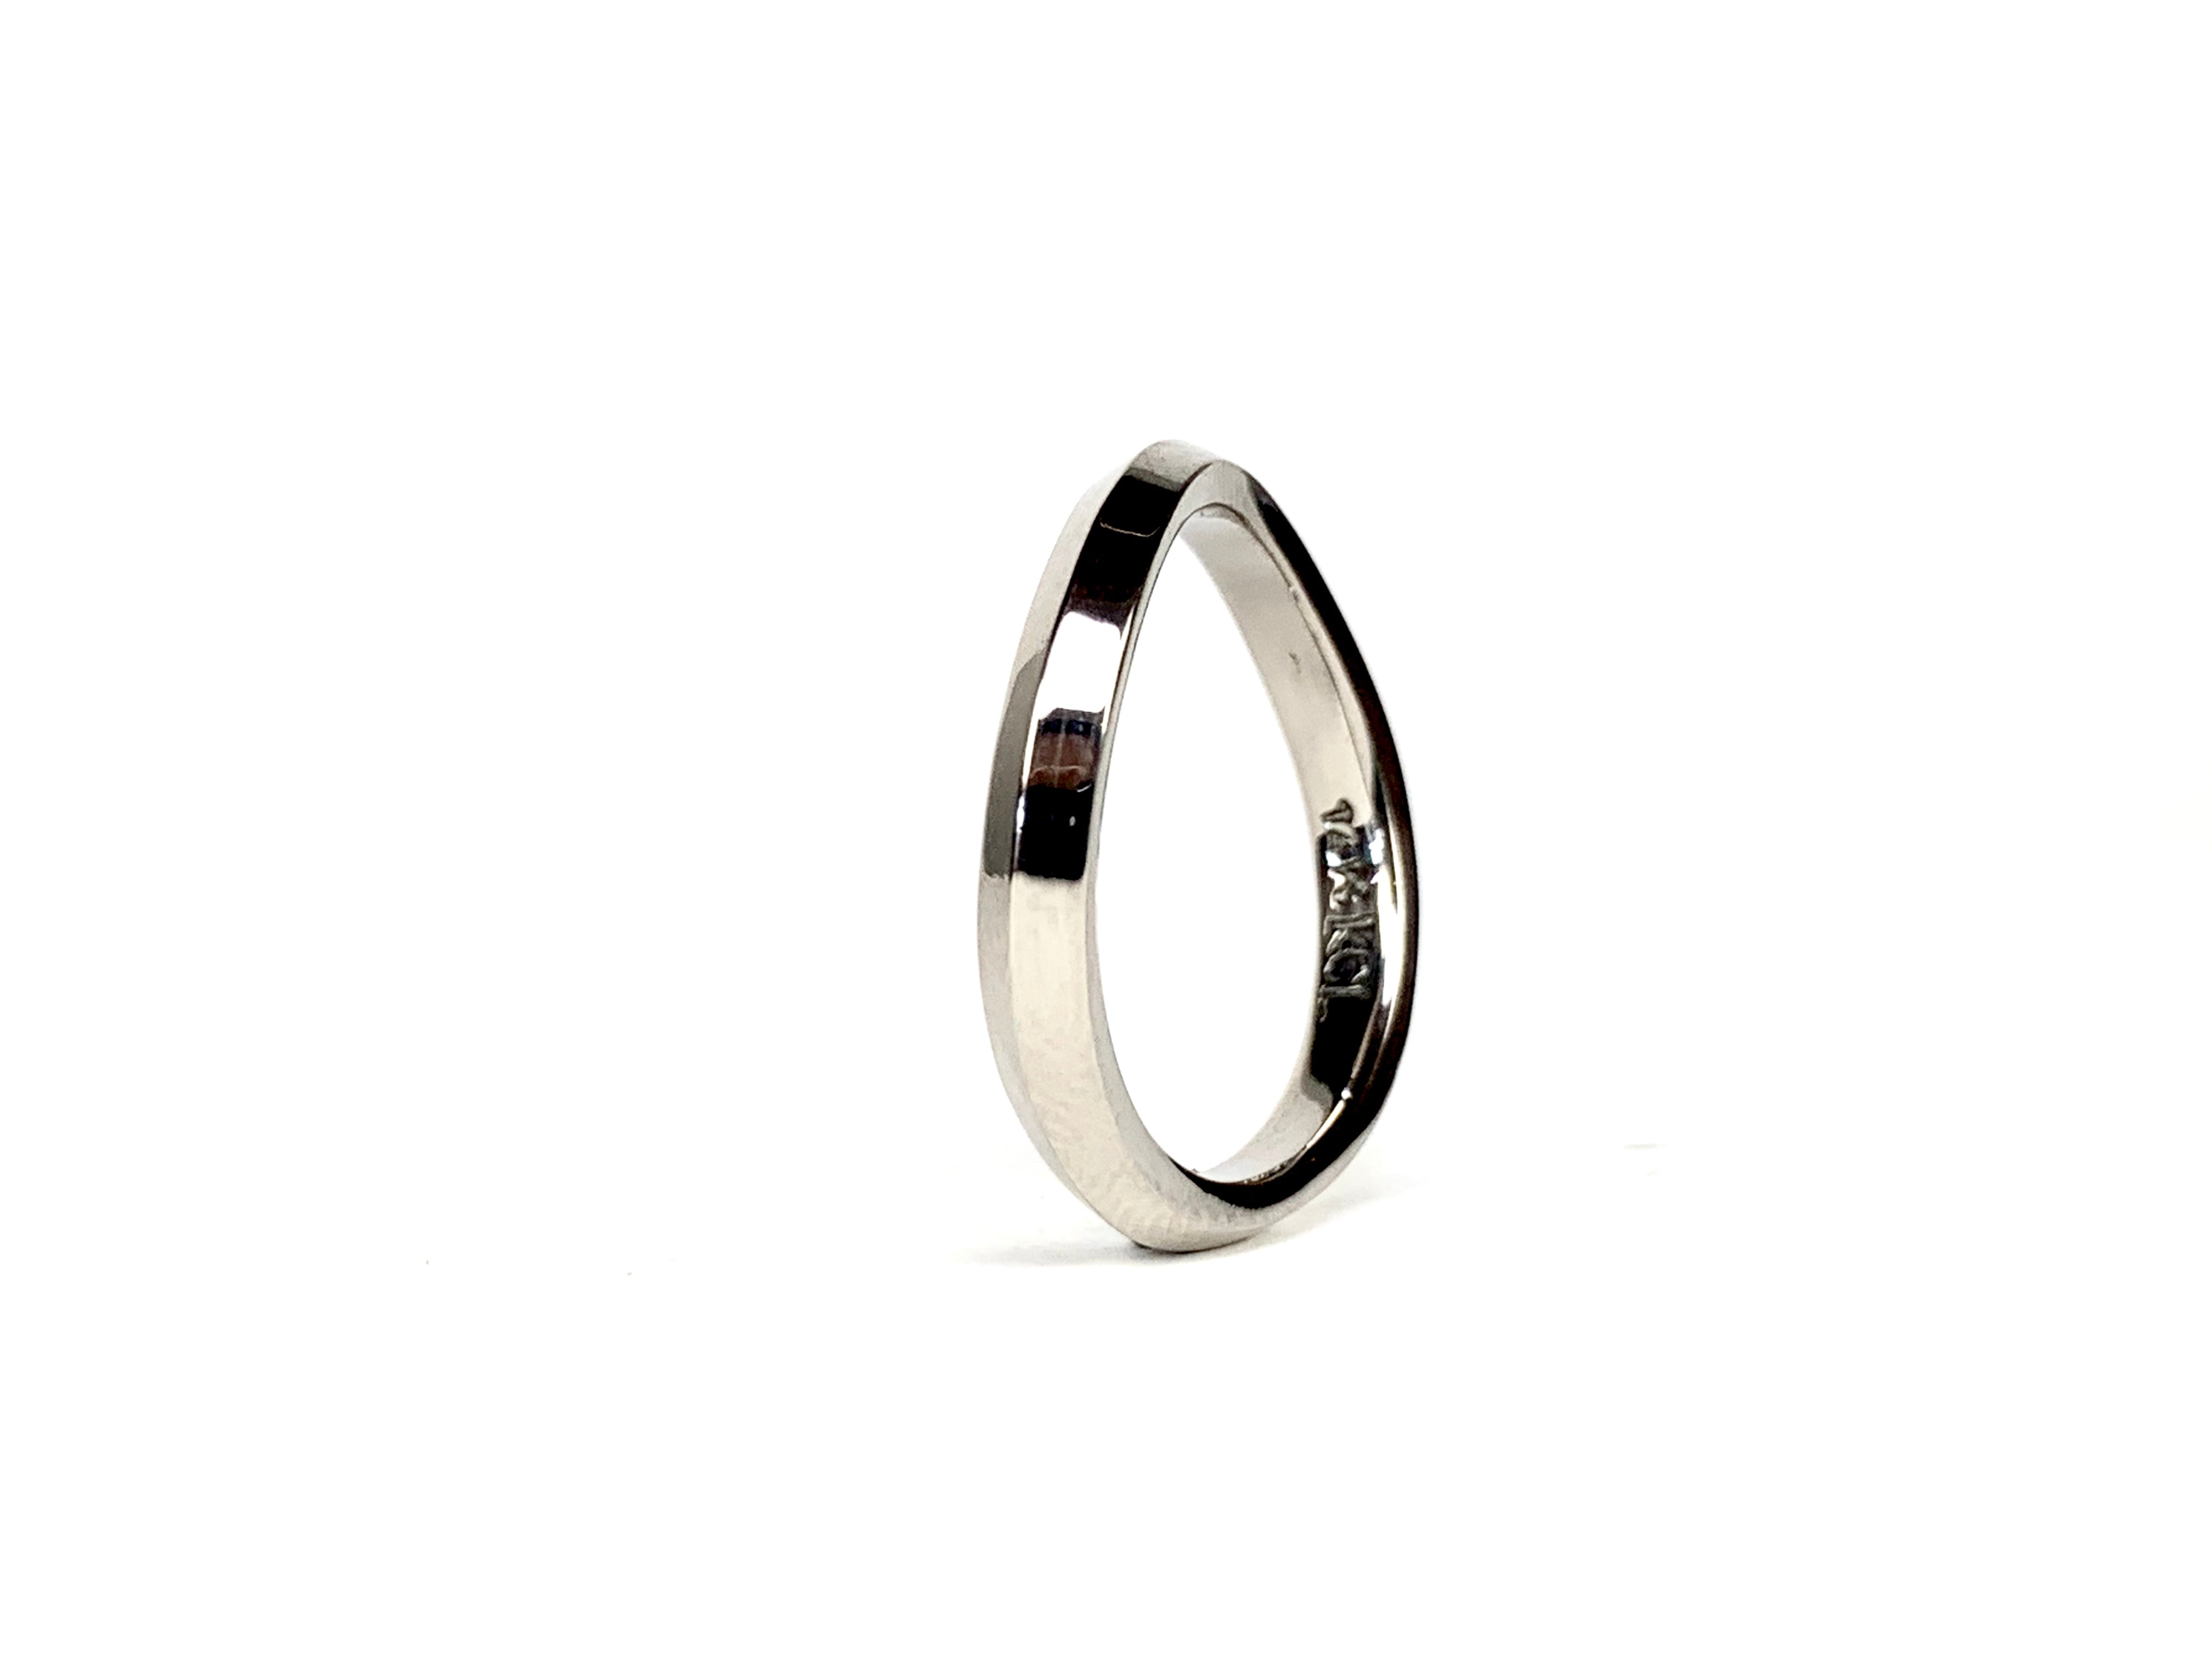 Chané in 14k Palladium white gold Polished finish